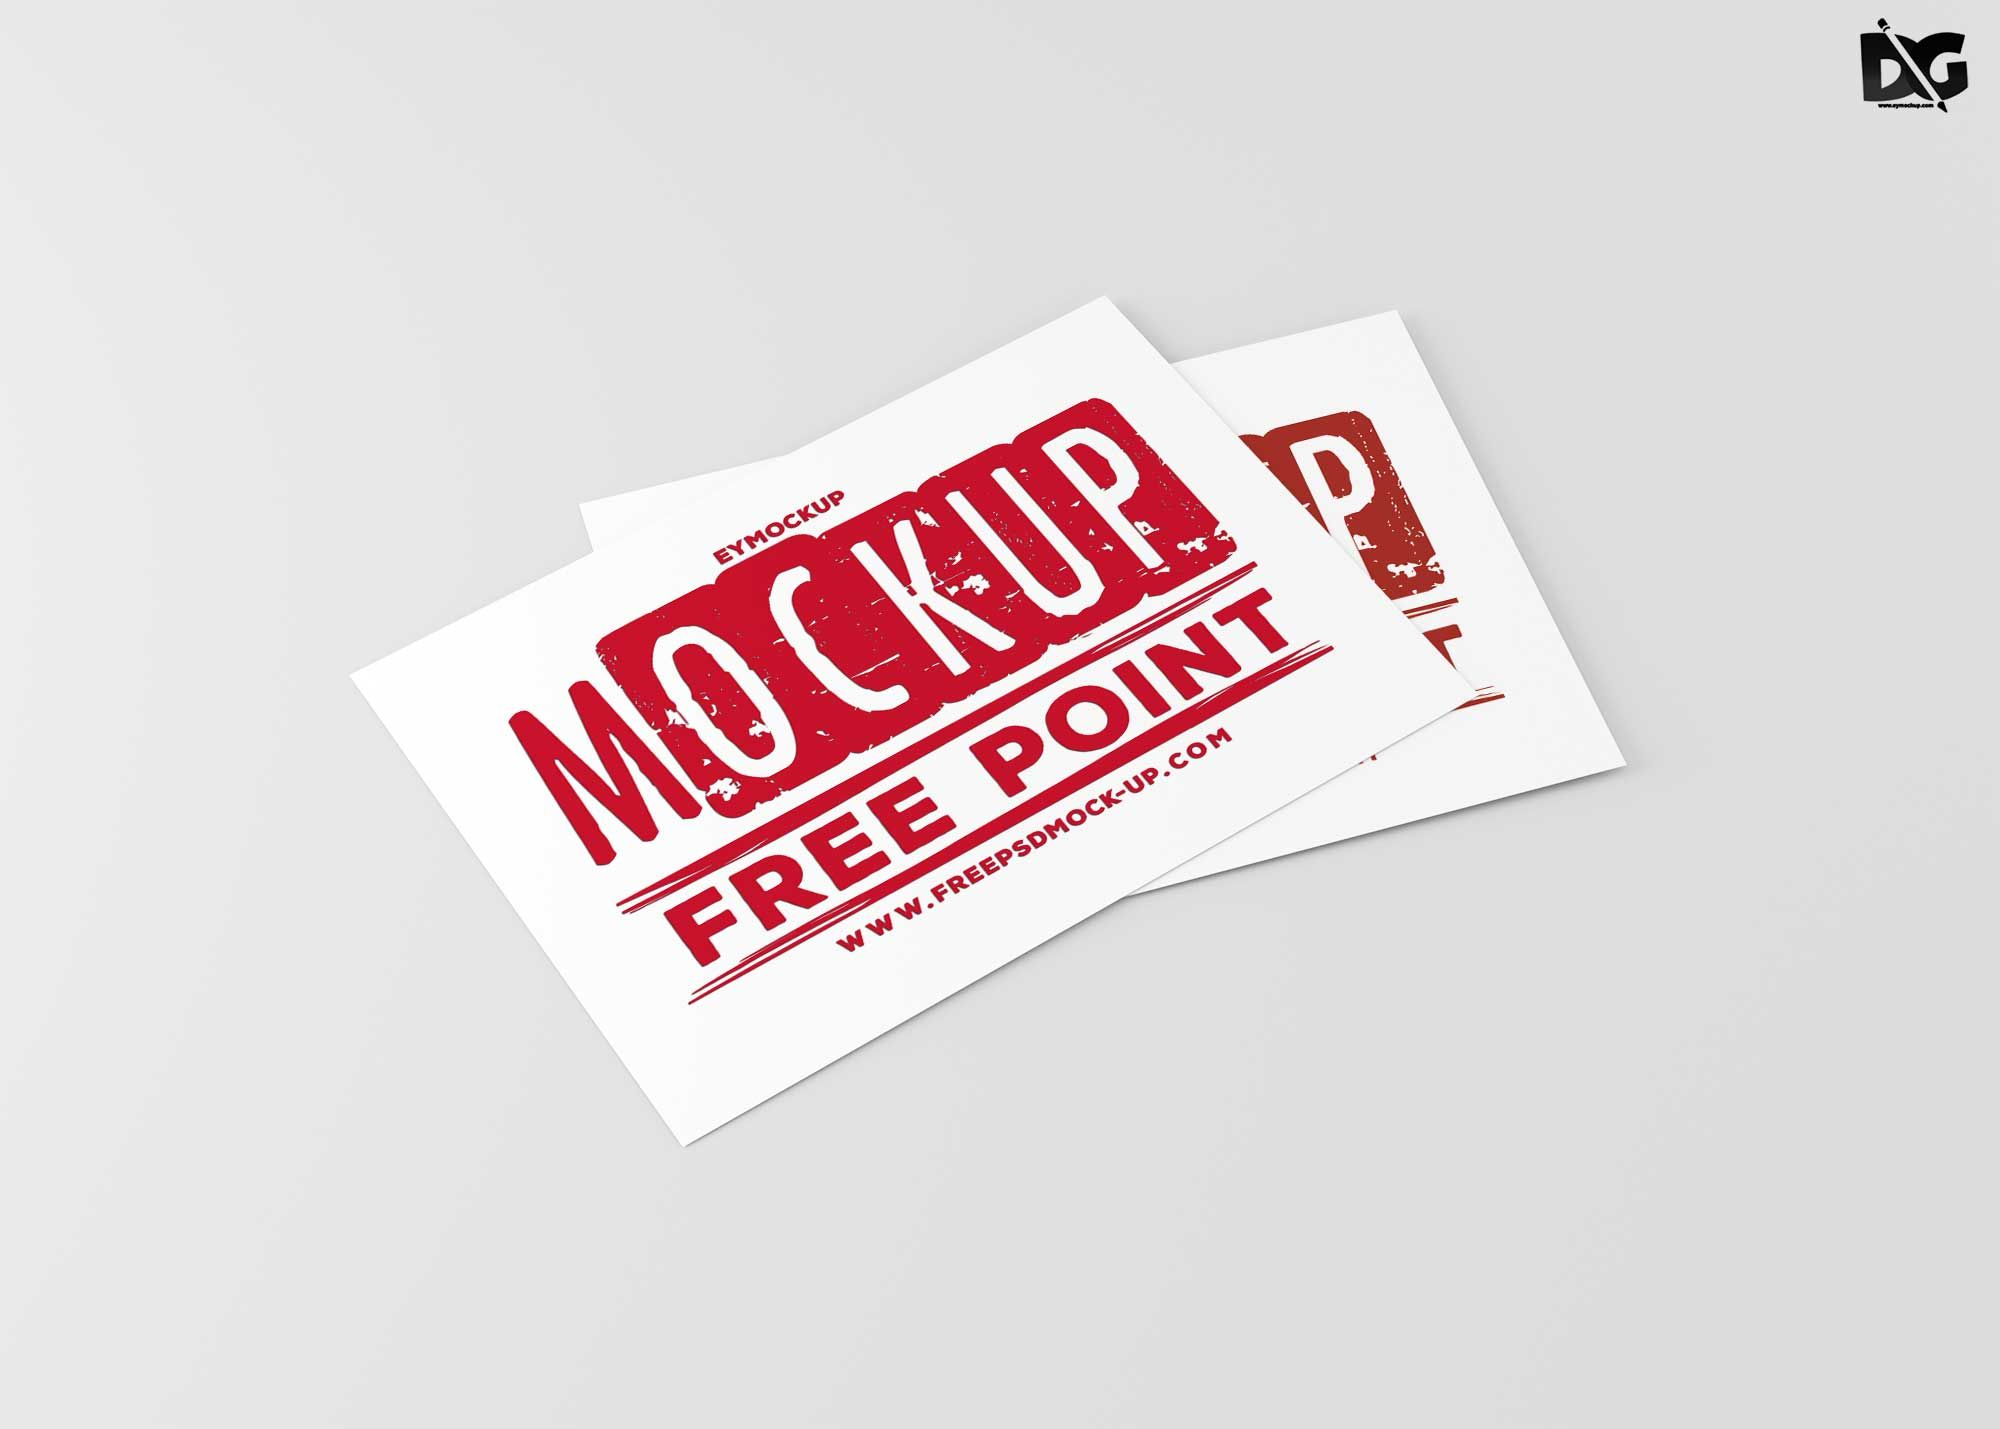 Free Download Psd Business Card Mockup Cardmockup Download Download2018 Downloadpsd Fre Business Card Mock Up Business Card Psd Free Business Card Mockup